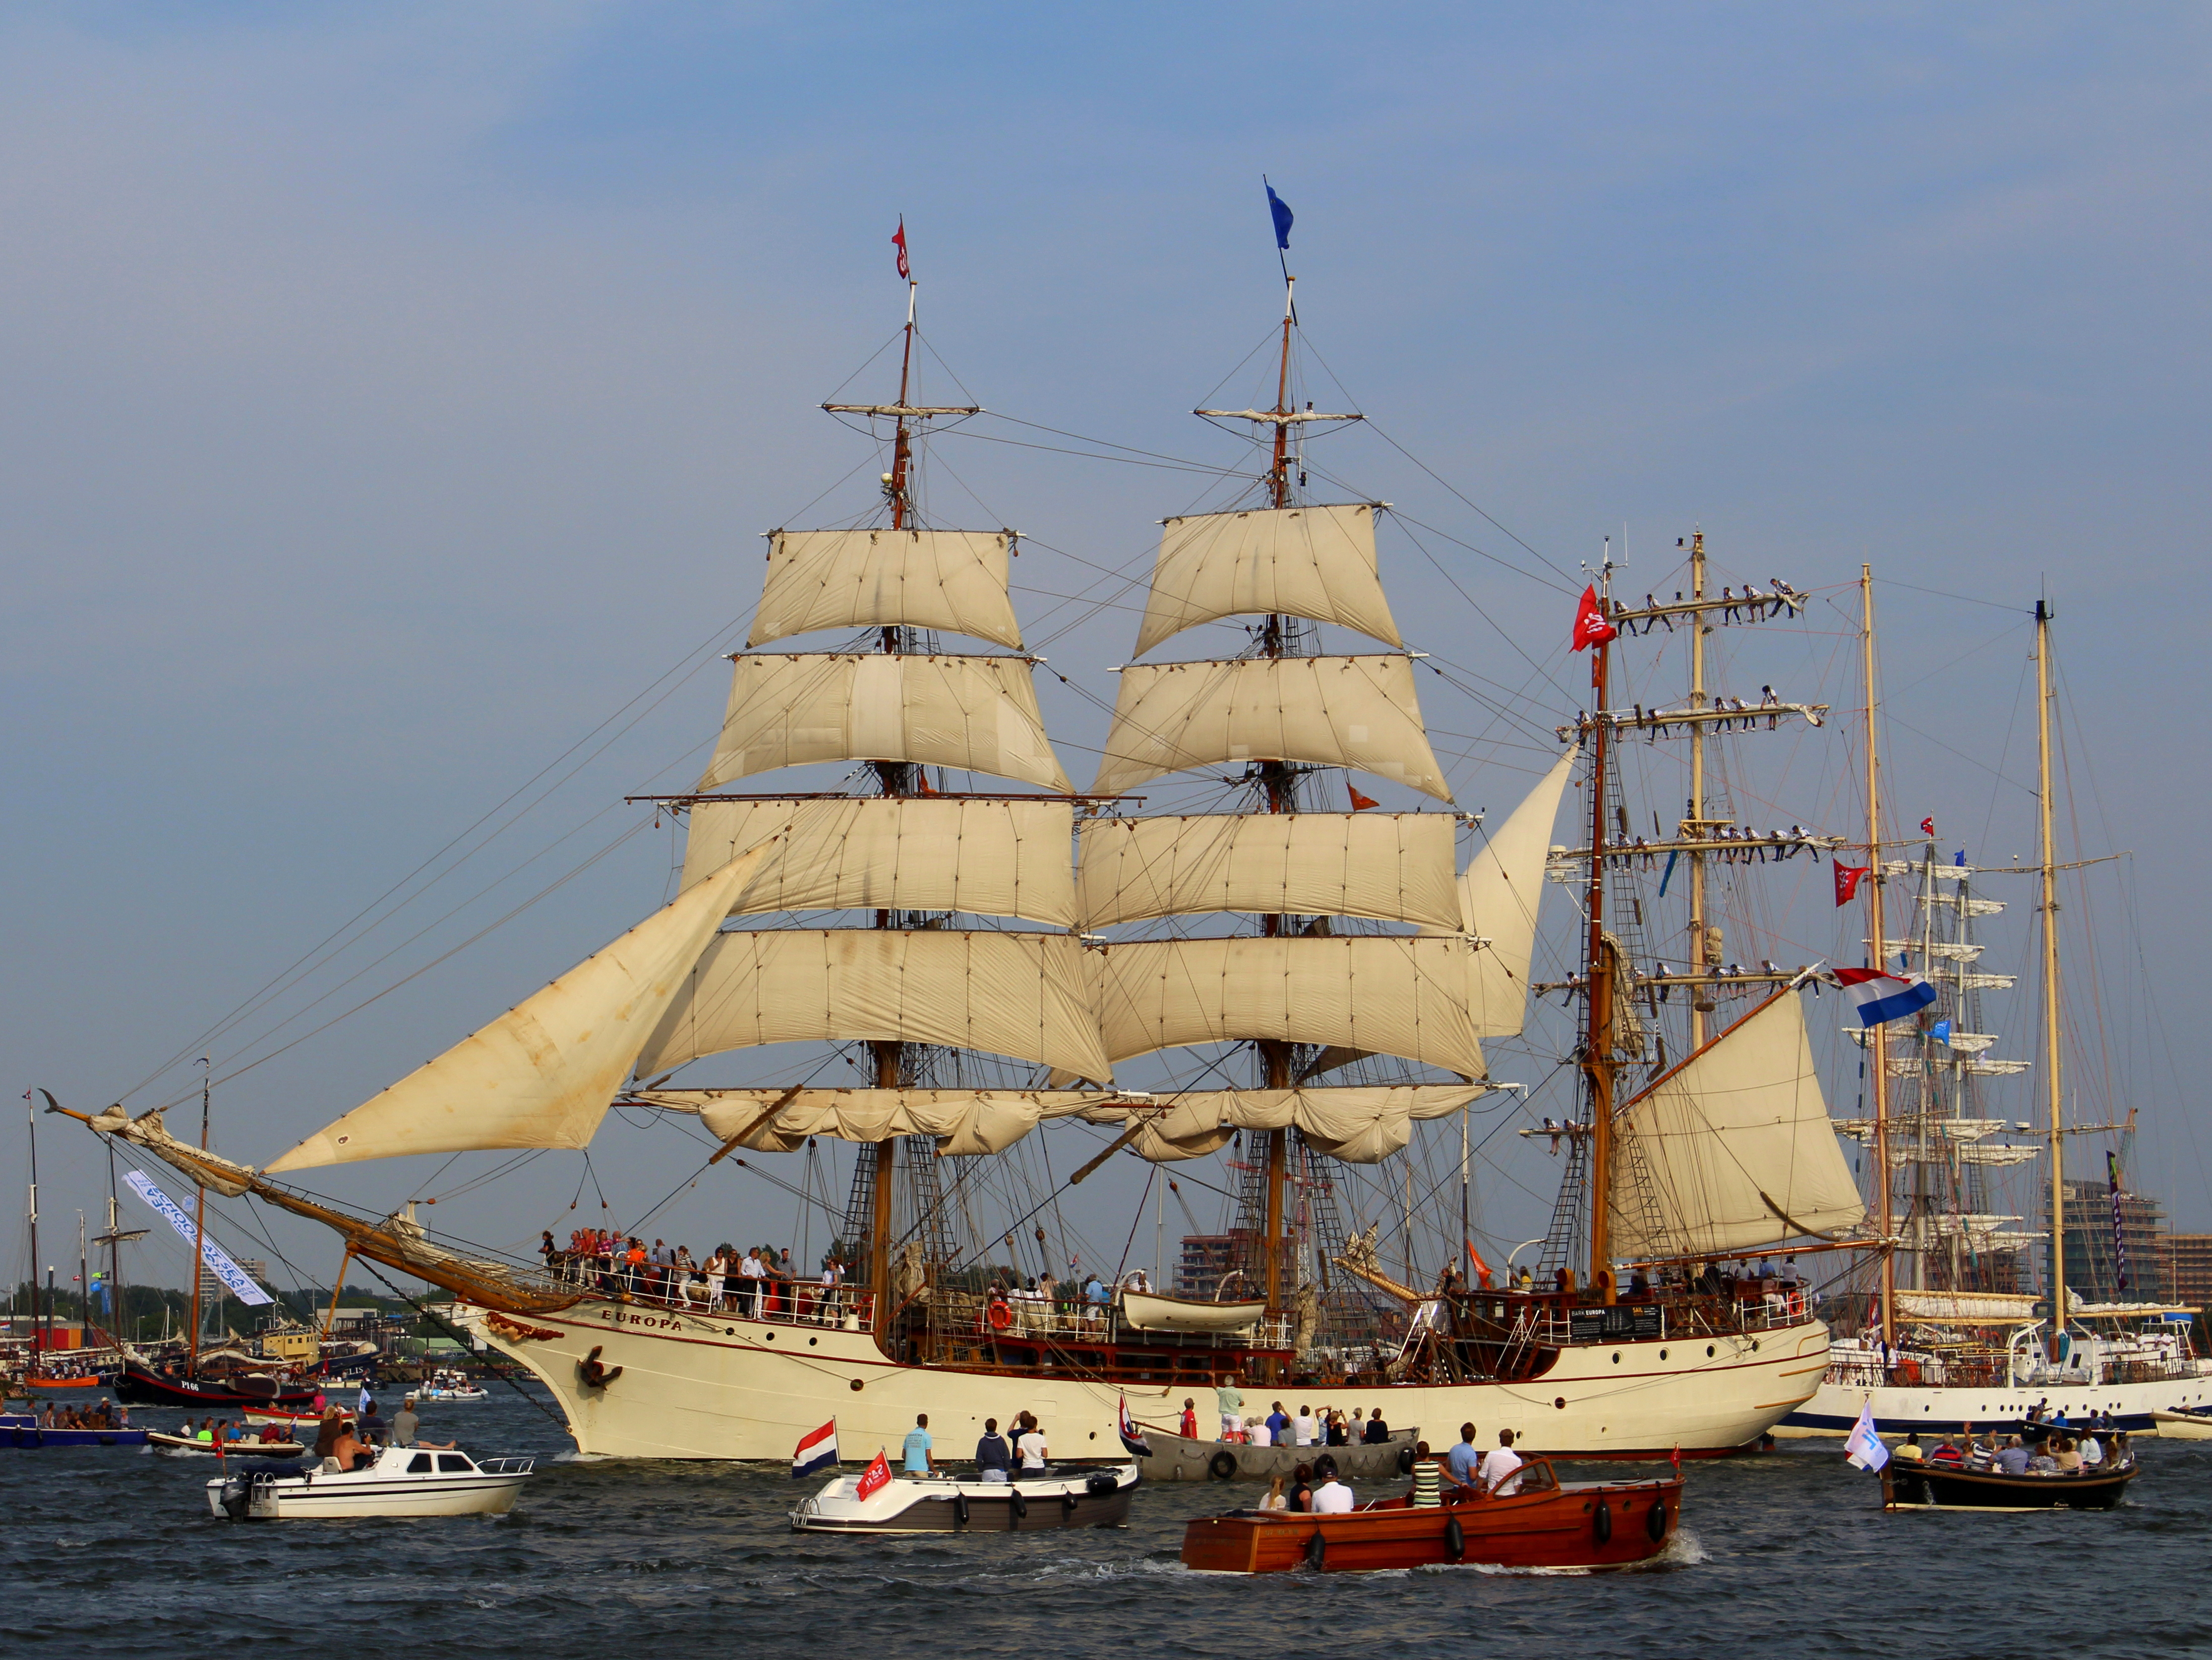 SAIL Amsterdam 2015 Sail out tall ships